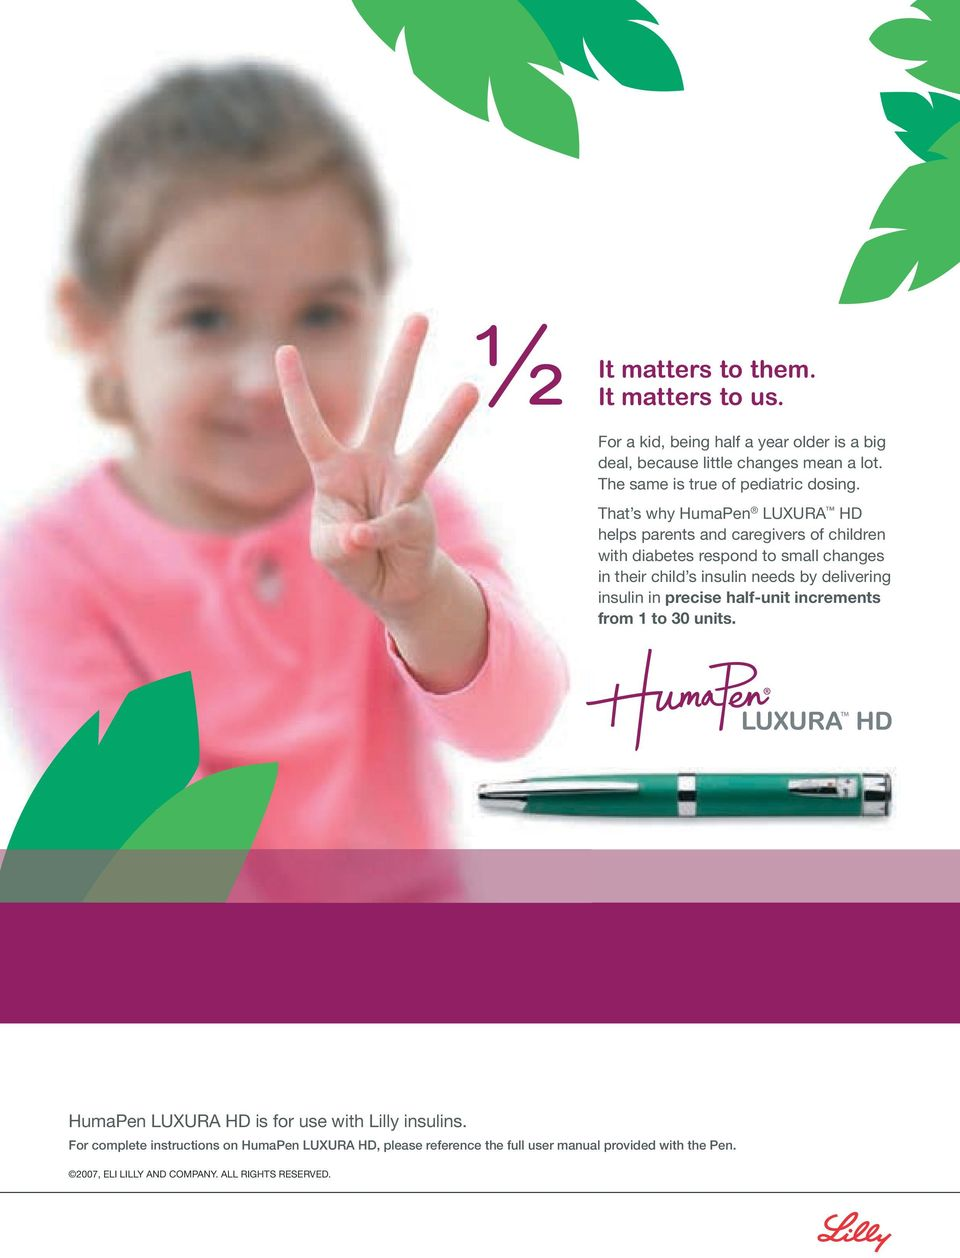 That s why HumaPen LUXURA HD helps parents and caregivers of children with diabetes respond to small changes in their child s insulin needs by